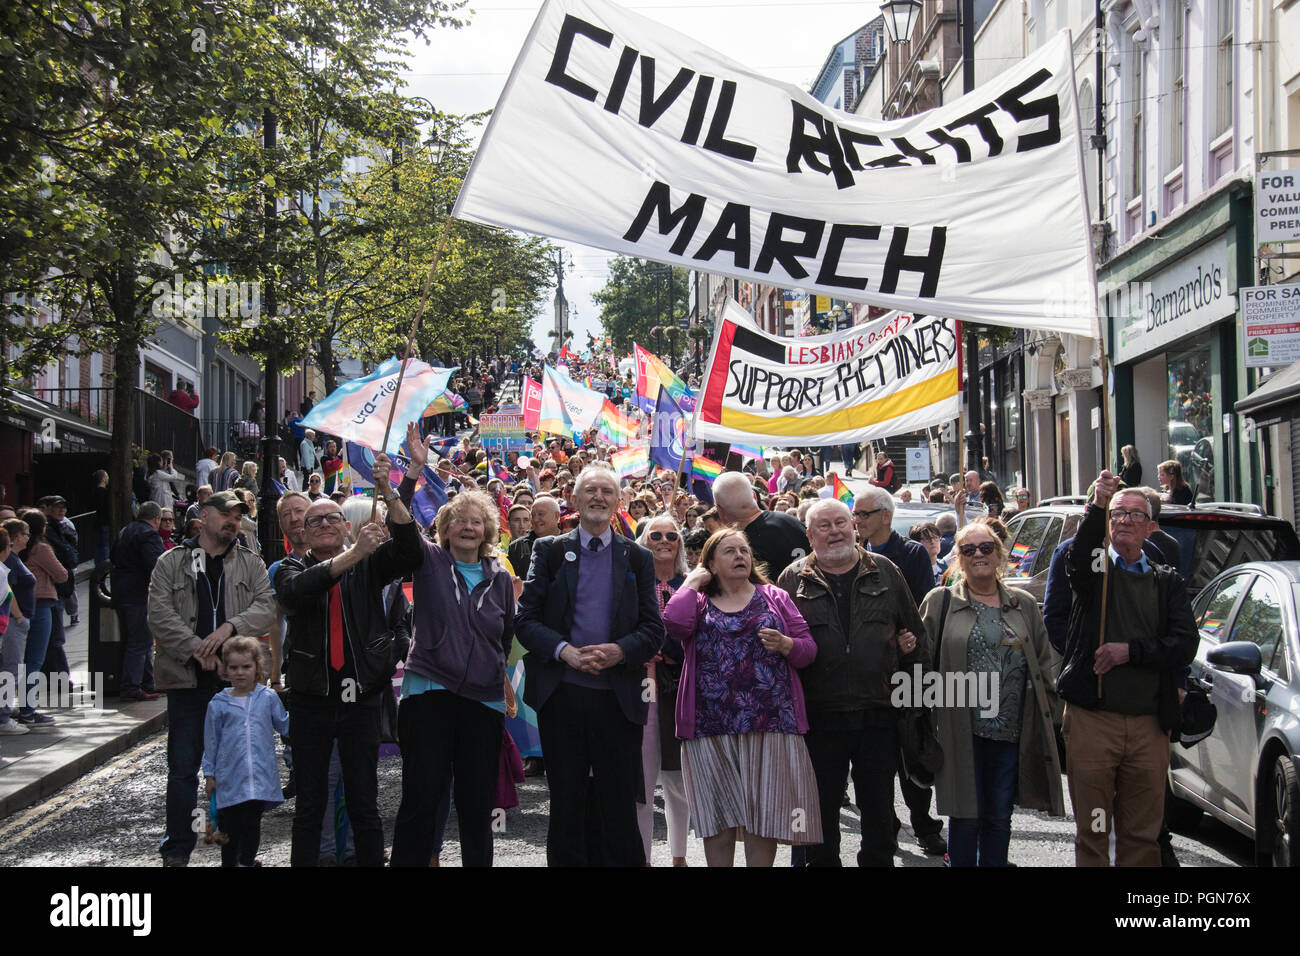 Civil Rights / Pride march - Stock Image